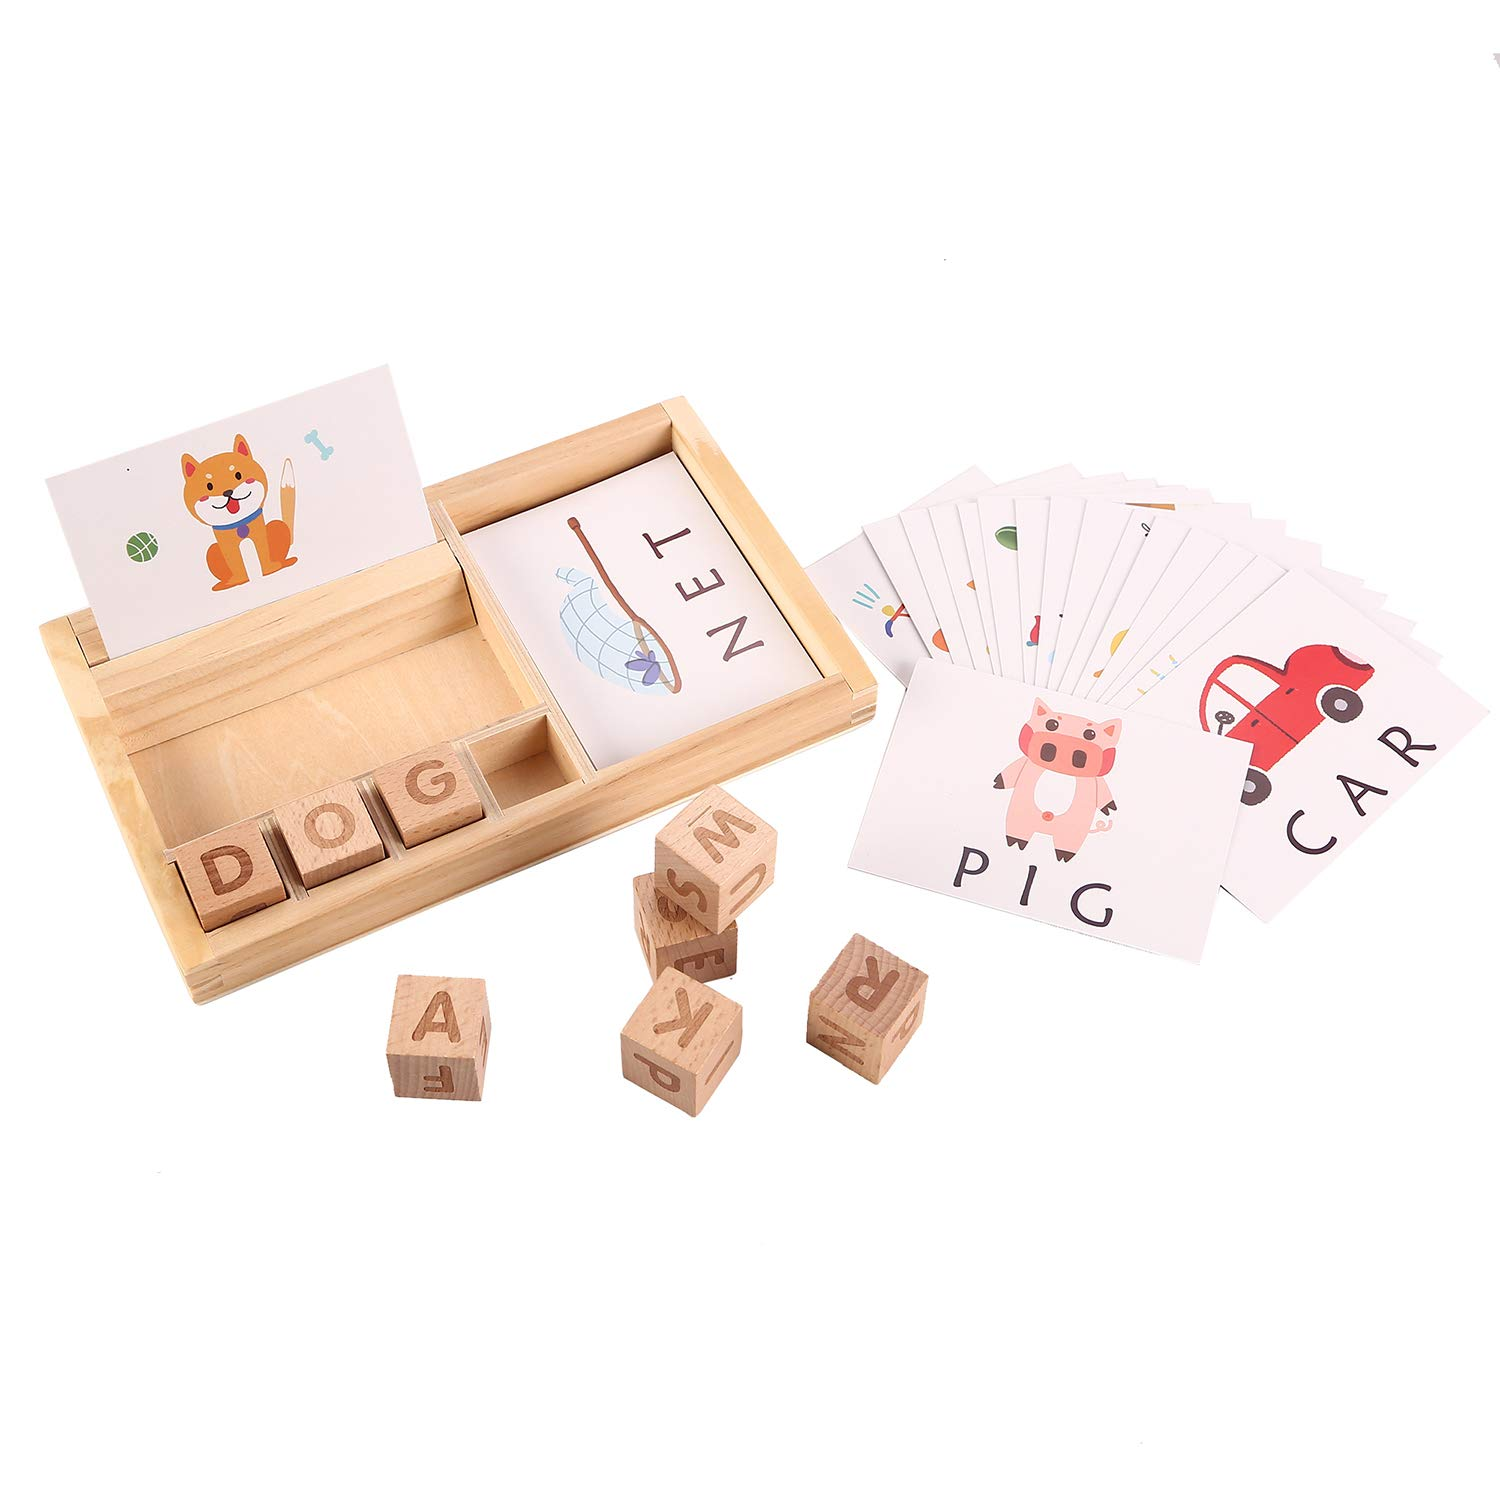 Joqutoys Wooden Educational Toys Learning Matching Letter Games and Develops Alphabet Words Spelling Skills Letter Block for Girls Boys Gift(30pcs Cards) by Joqutoys